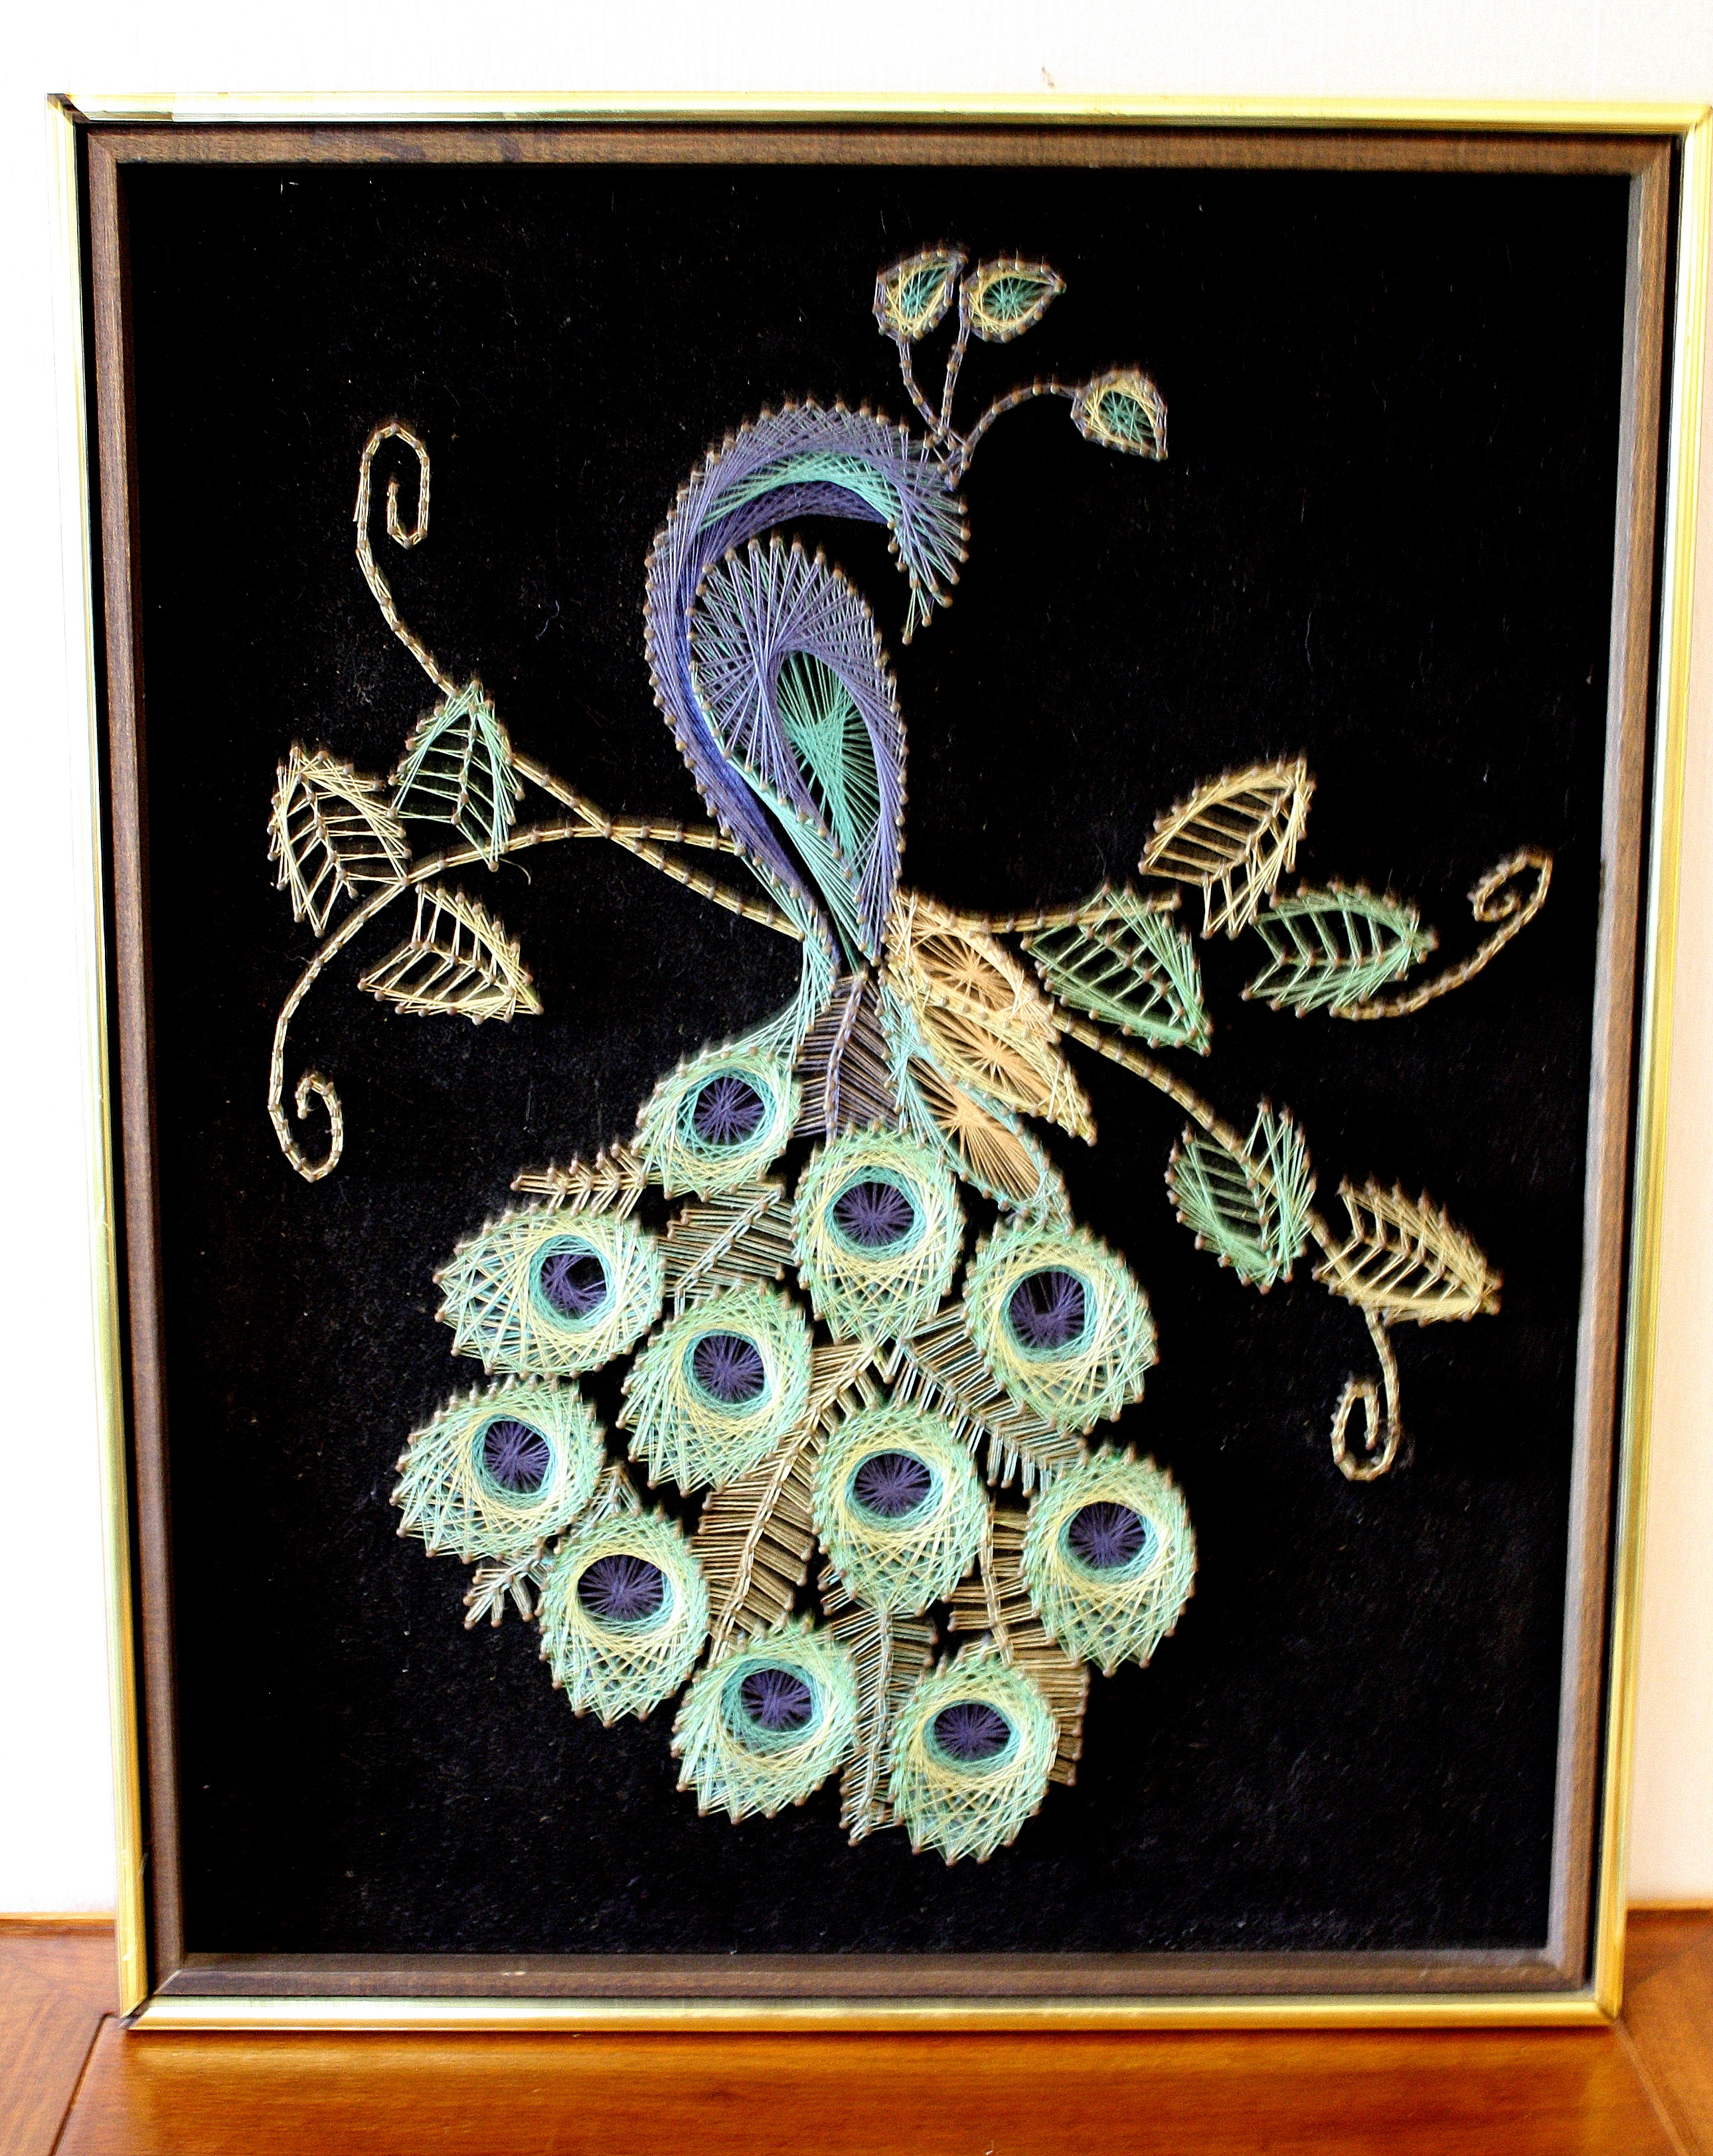 peacock art 1 Picked Vintage : peacock art 1 from pickedvintage.com size 2580 x 3247 jpeg 5363kB